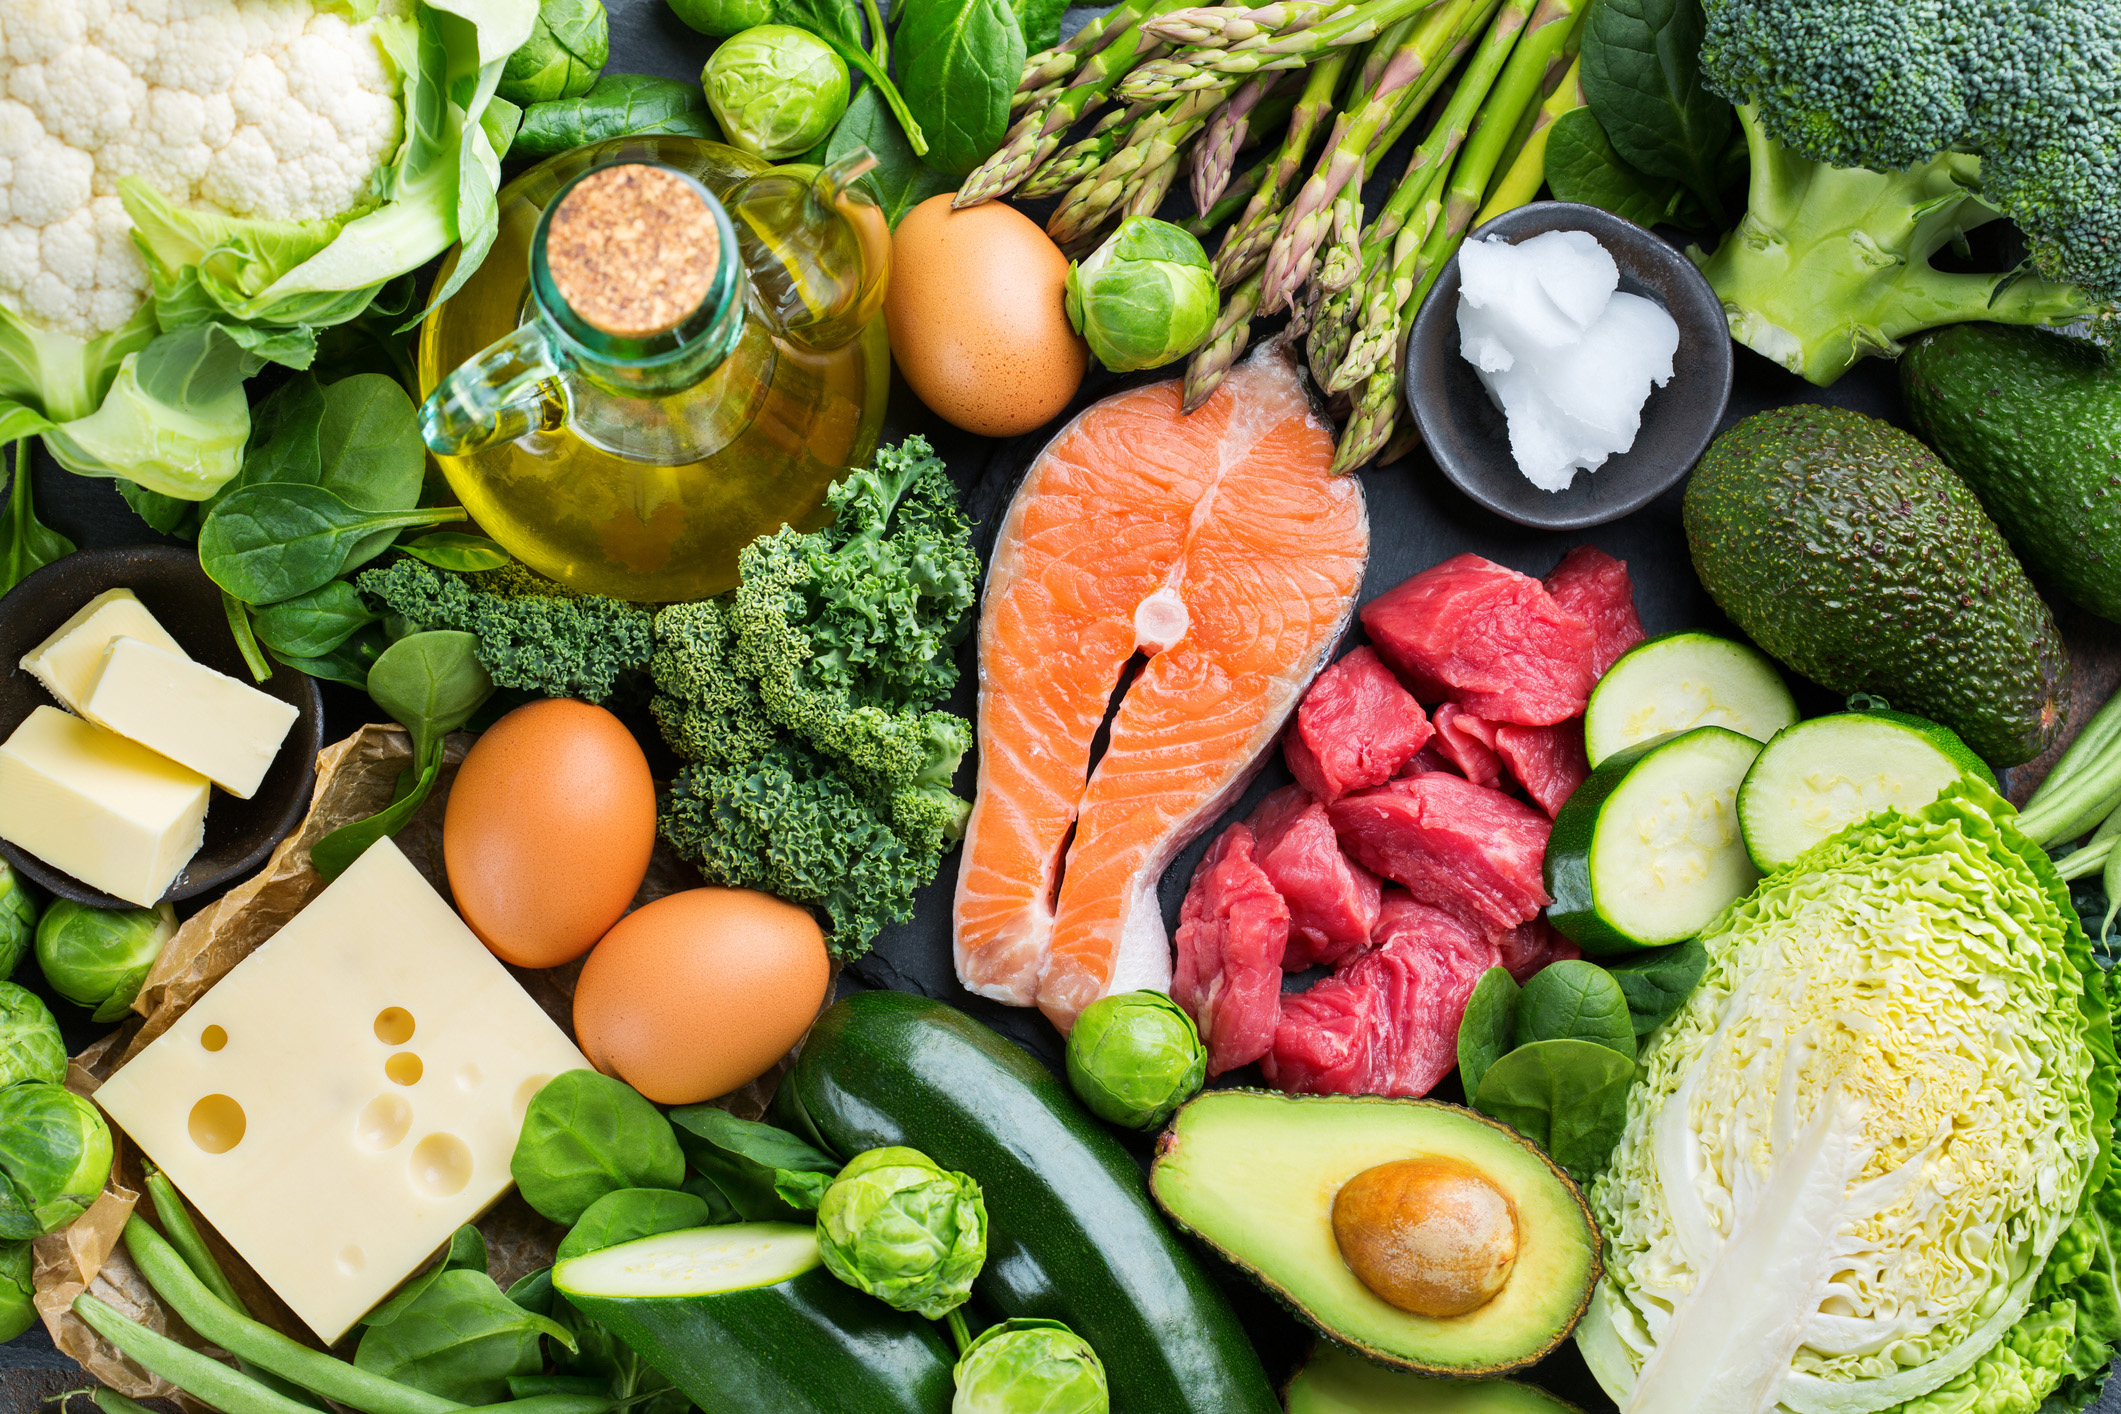 NIH releases strategic plan to accelerate nutrition research over next 10 years